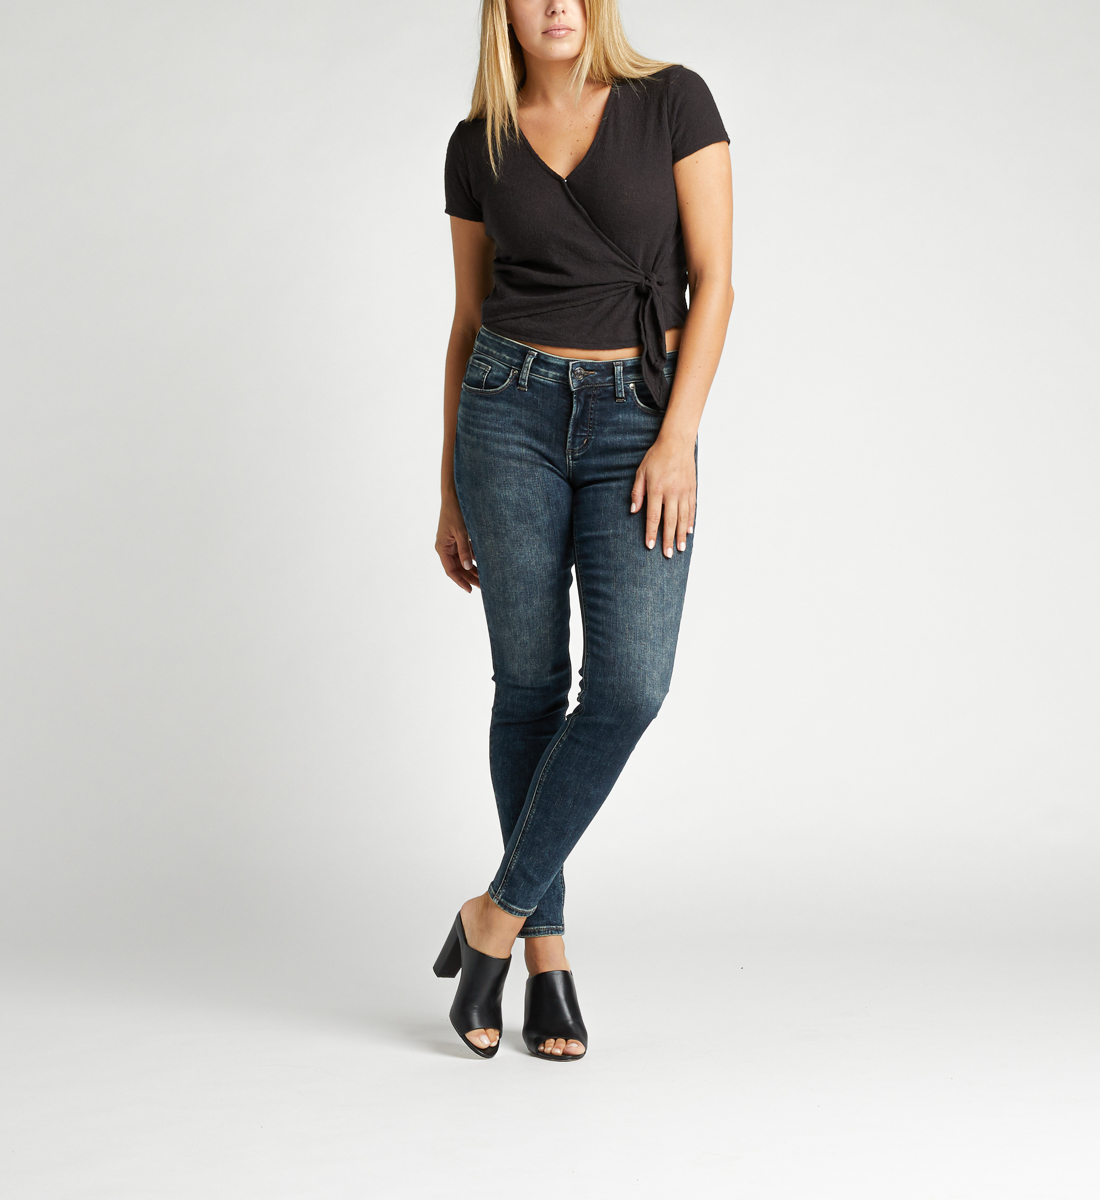 Silver Jeans Elyse Mid Rise Skinny Jeans